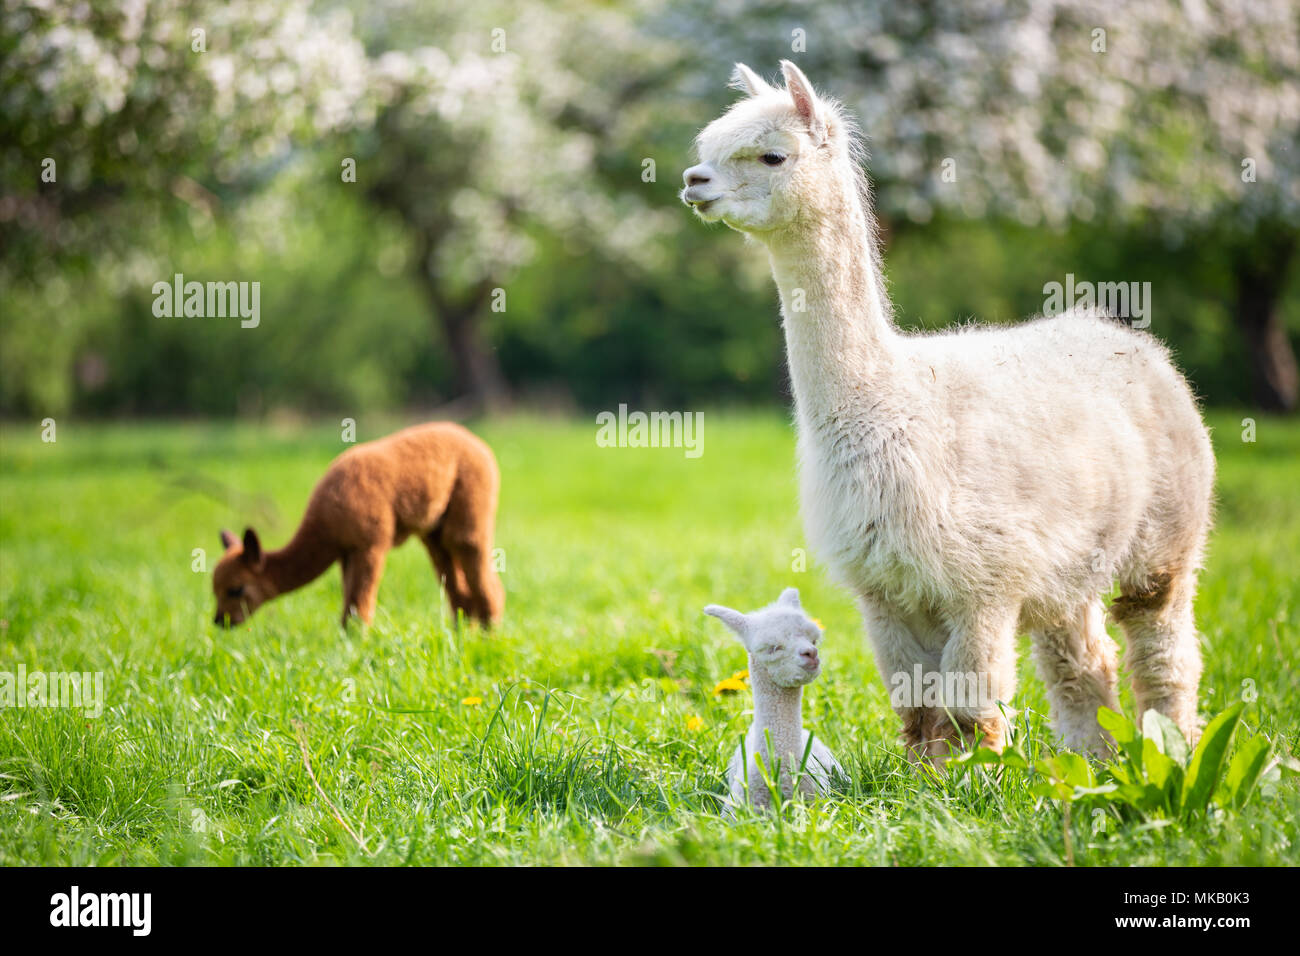 White Alpaca with offspring, South American mammal - Stock Image